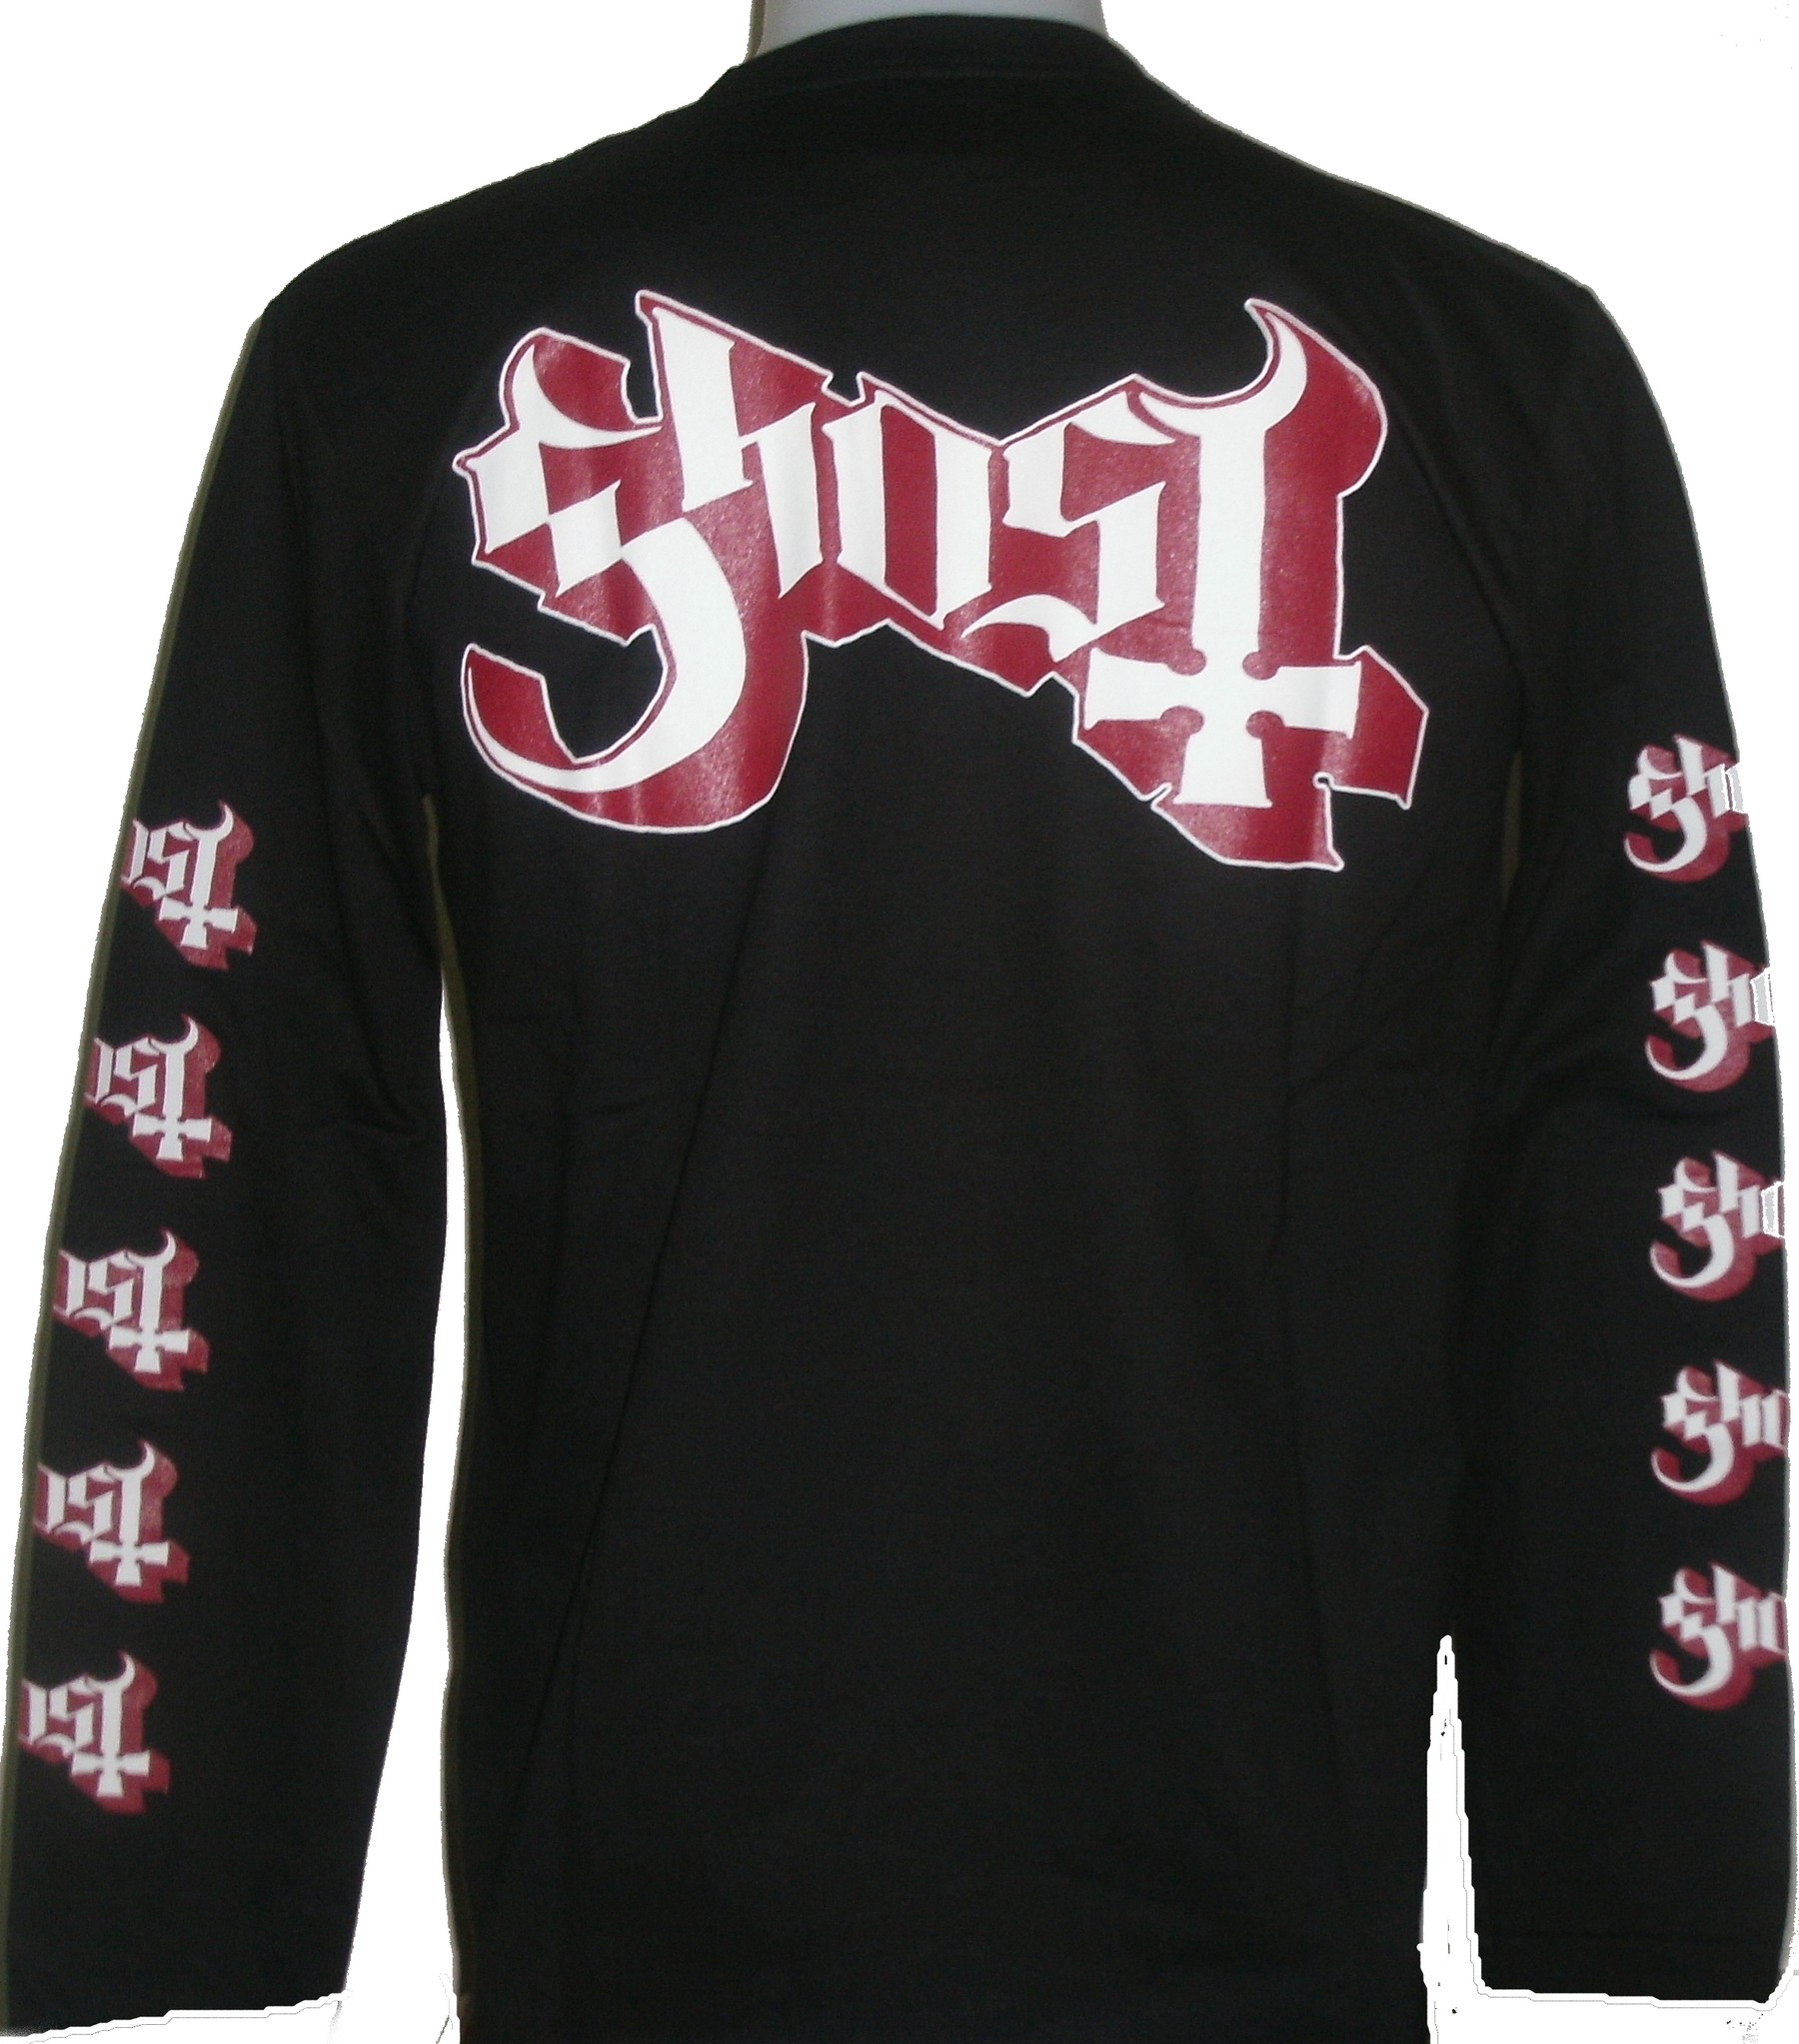 a700376ce Ghost long-sleeved t-shirt size S – RoxxBKK